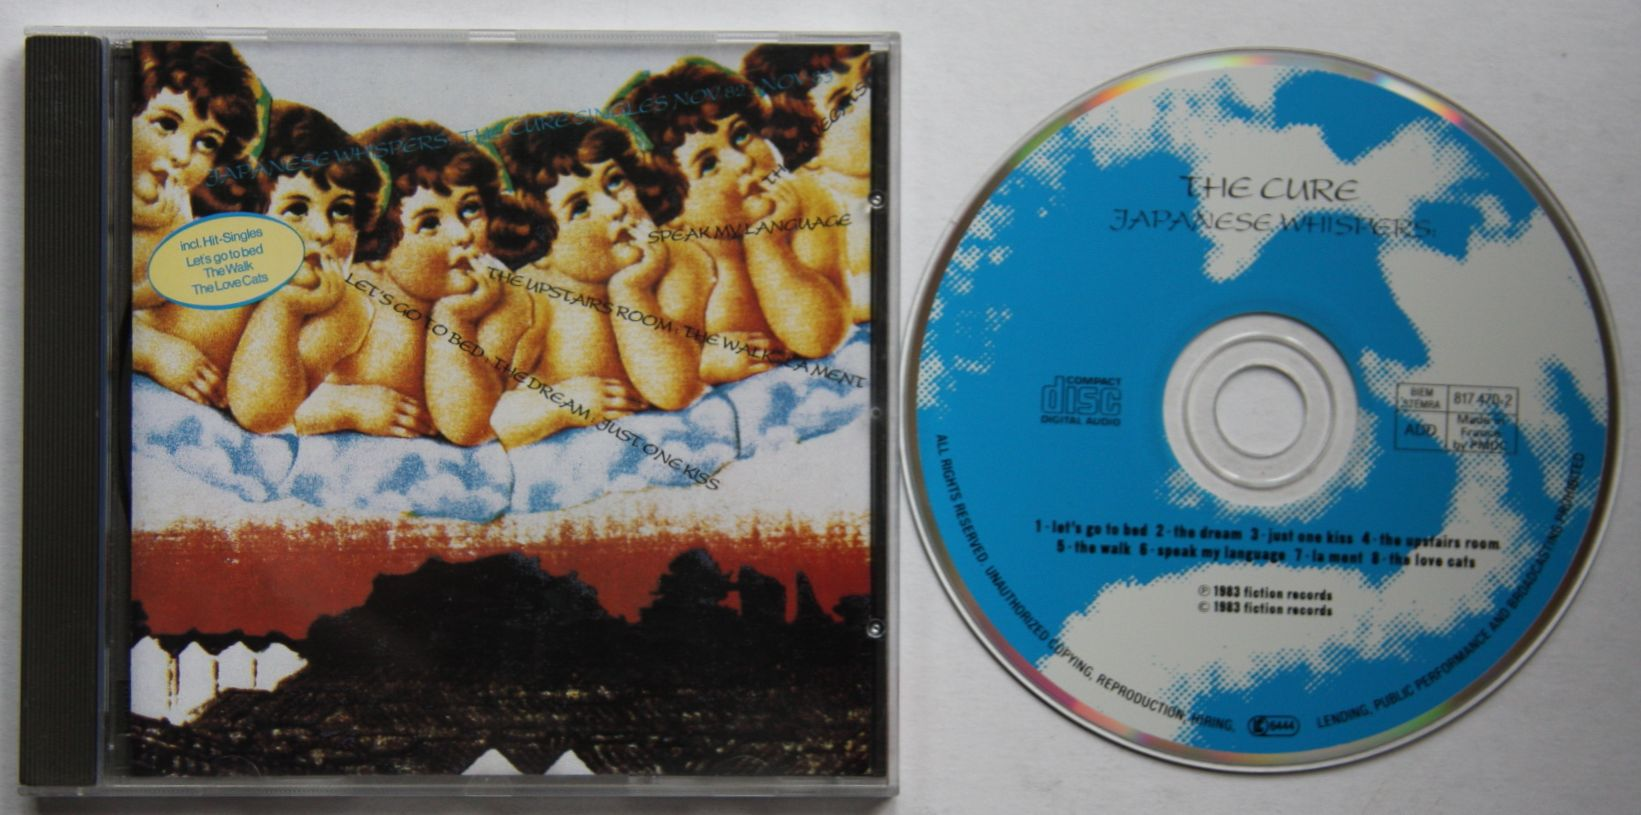 Cure - Japanese Whispers